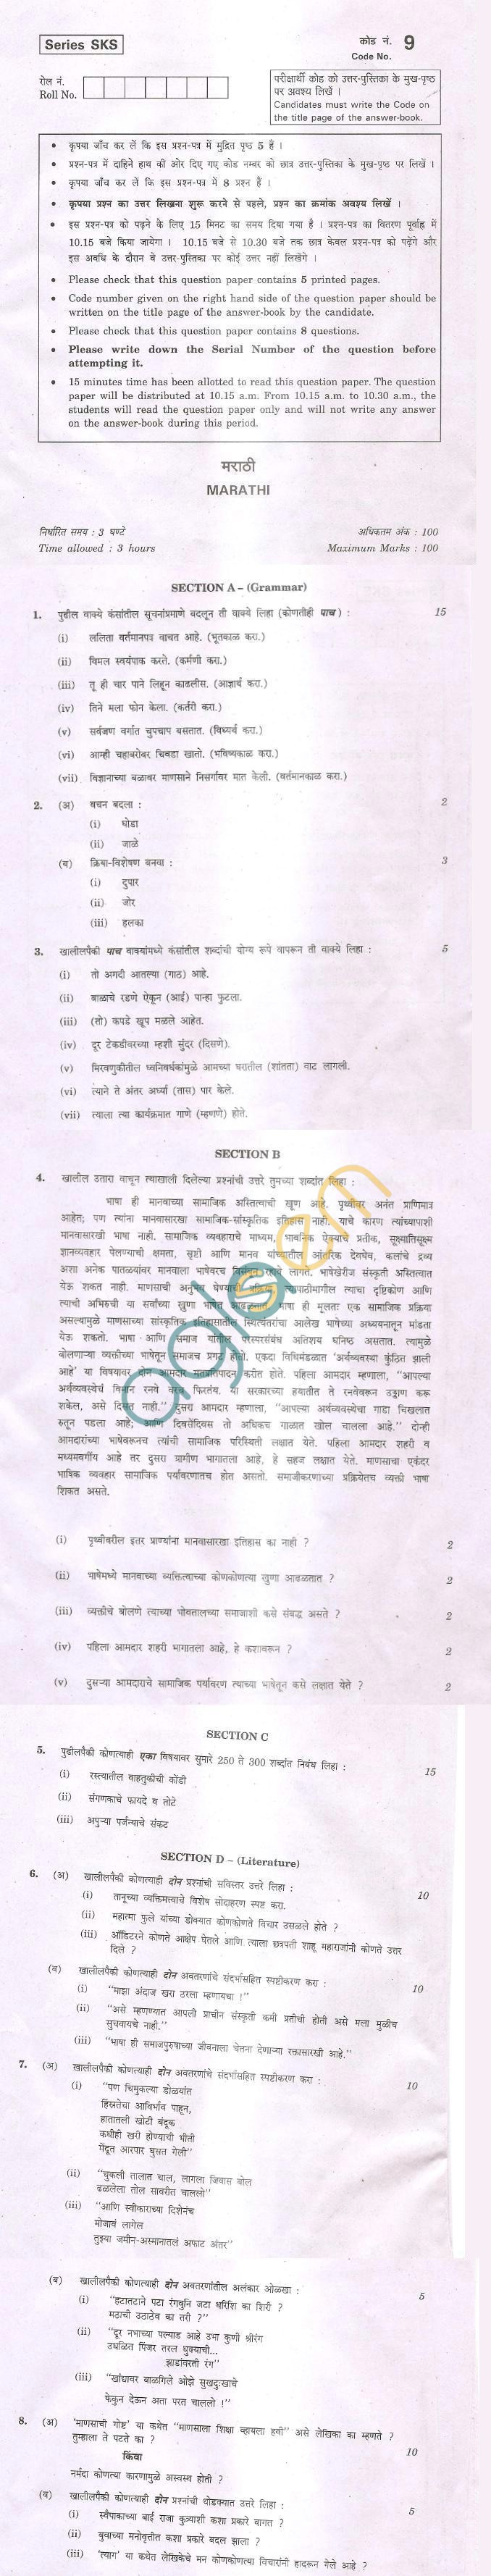 CBSE Board Exam 2013 Class XII Question Paper - Marathi